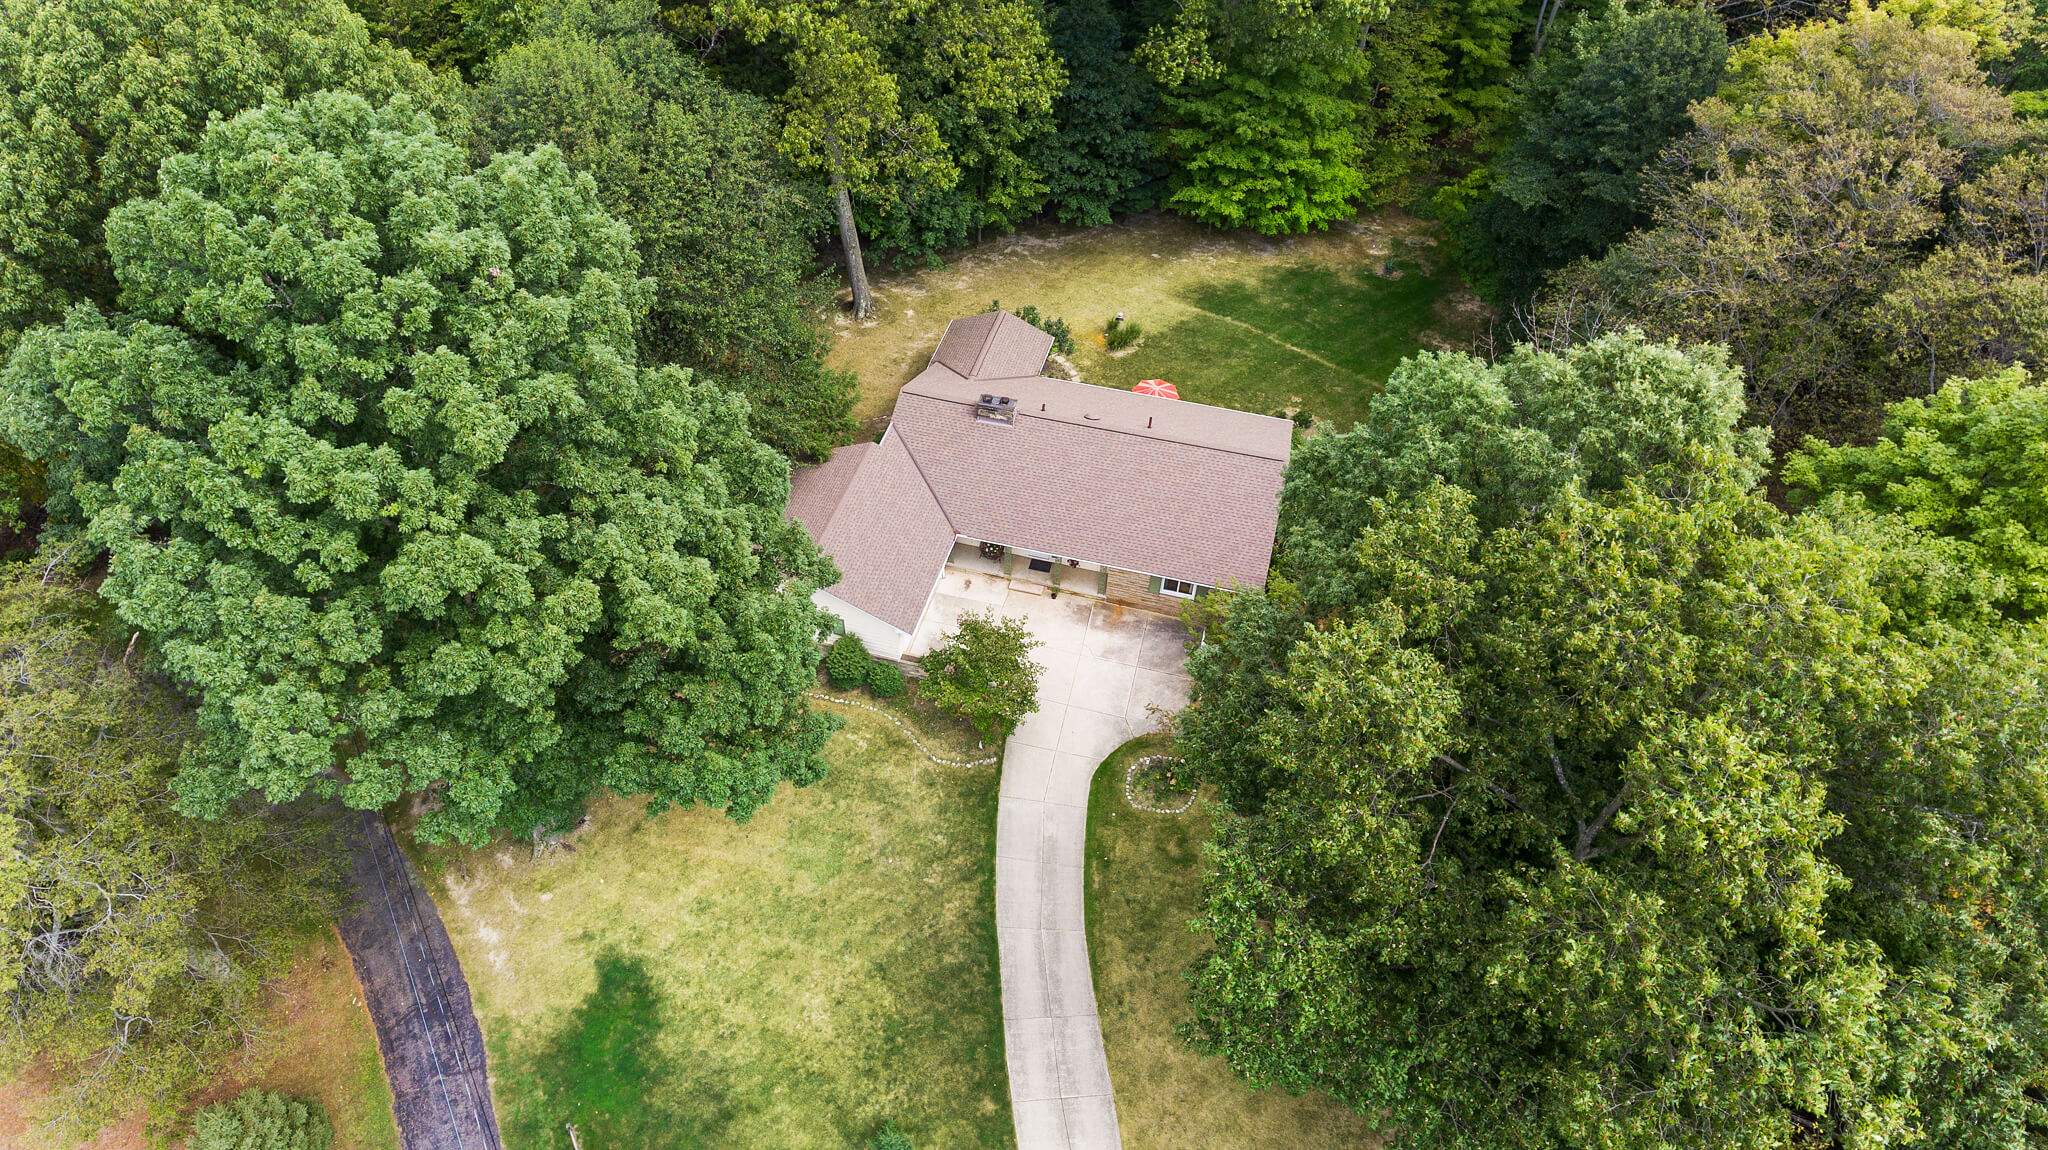 A well cared for home at 4349 Orandale Dr in Chagrin Falls